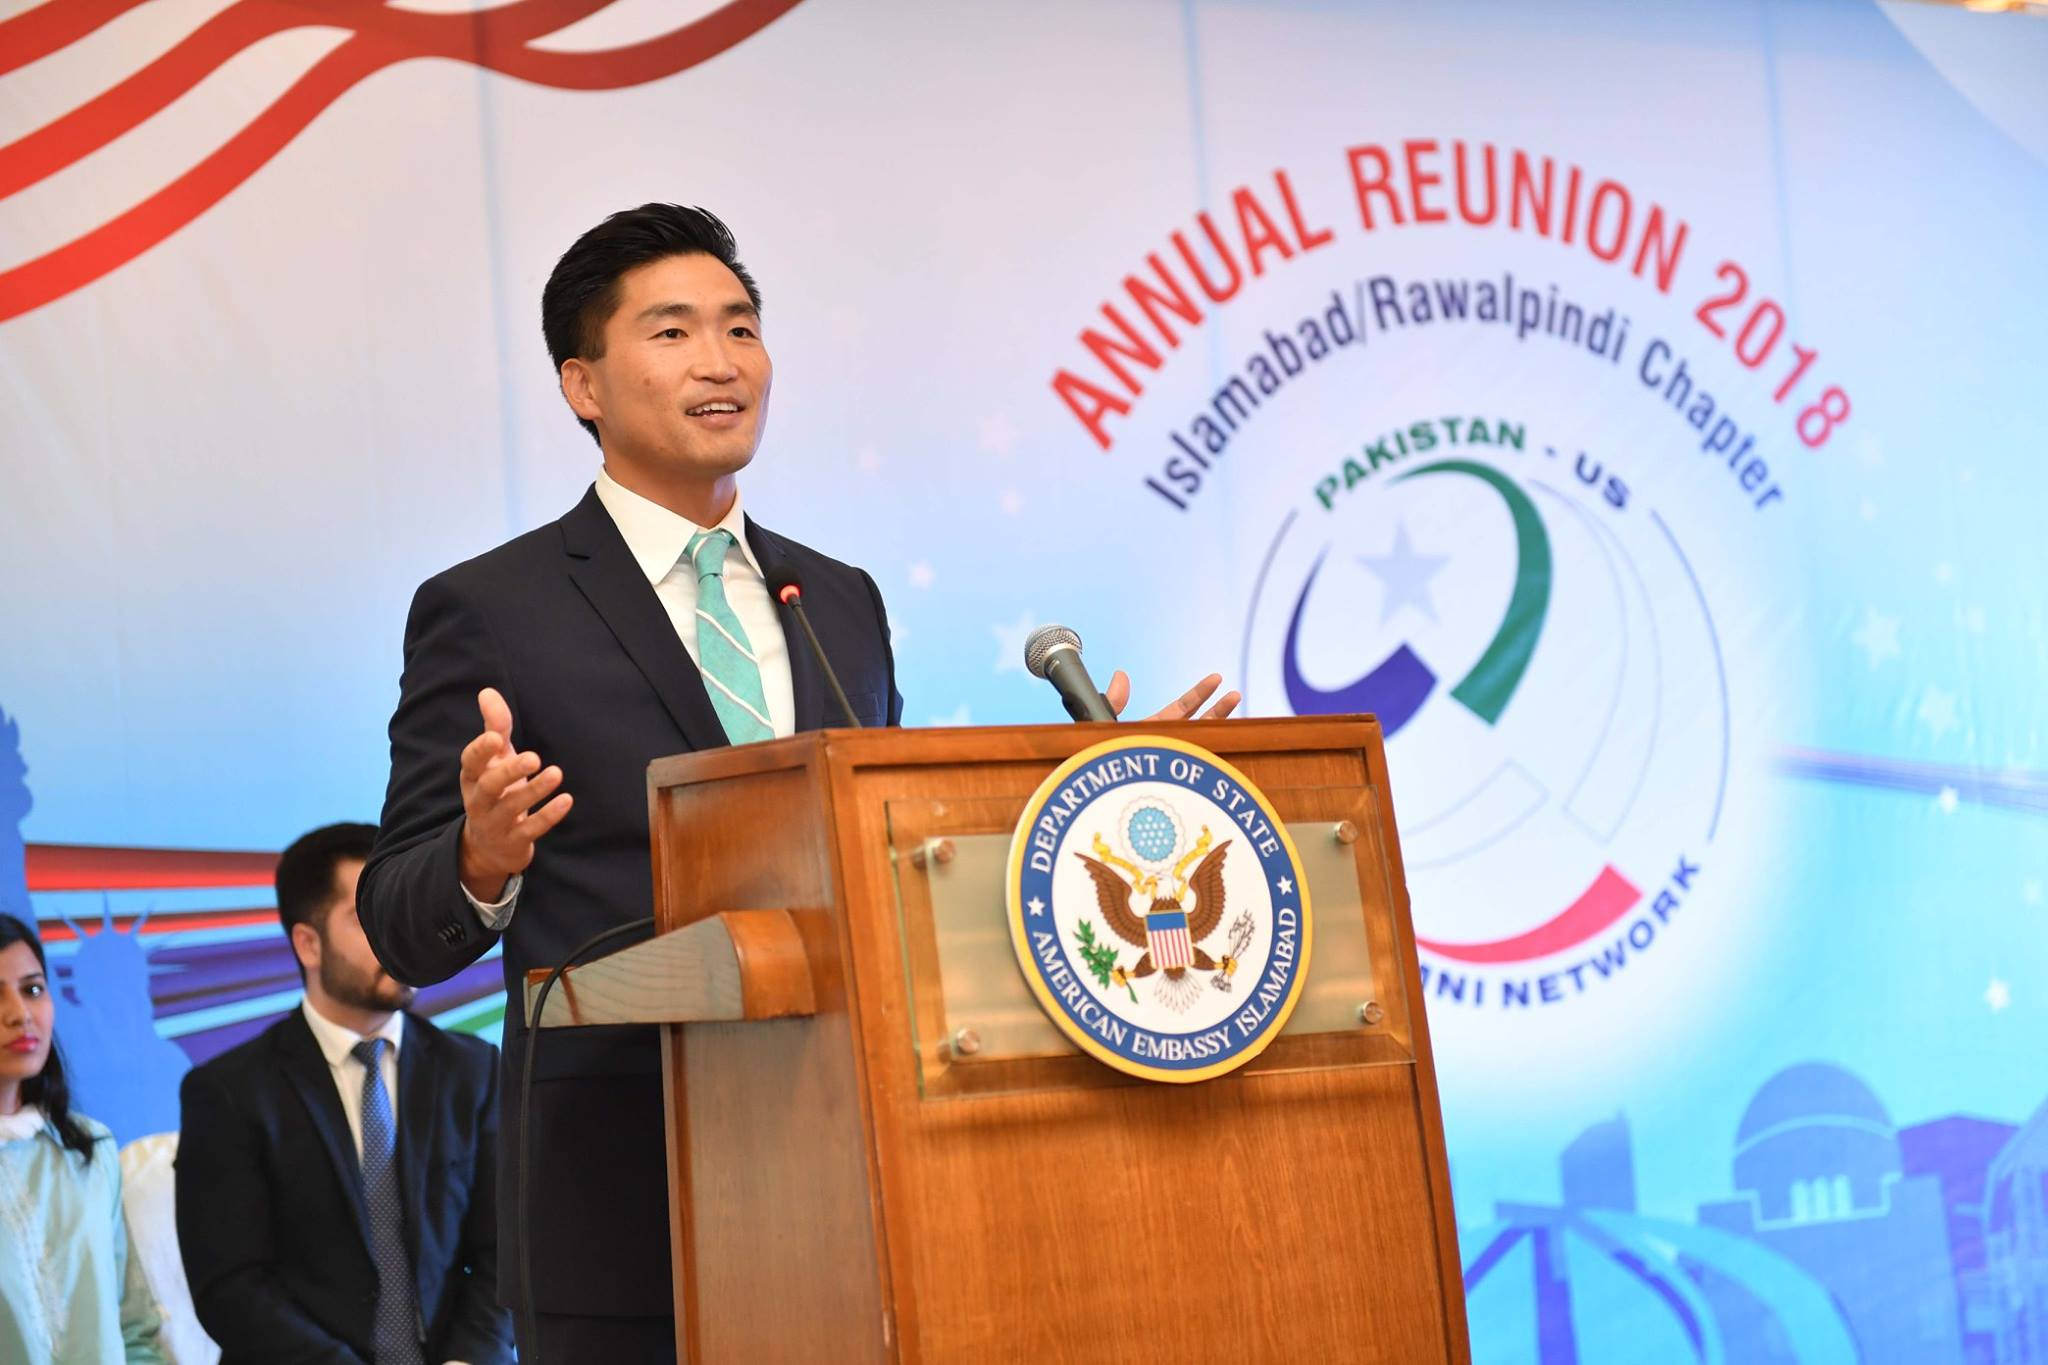 U.S. Public Diplomacy Officer, Yoon Nam, addressing the participants of the Islamabad reunion